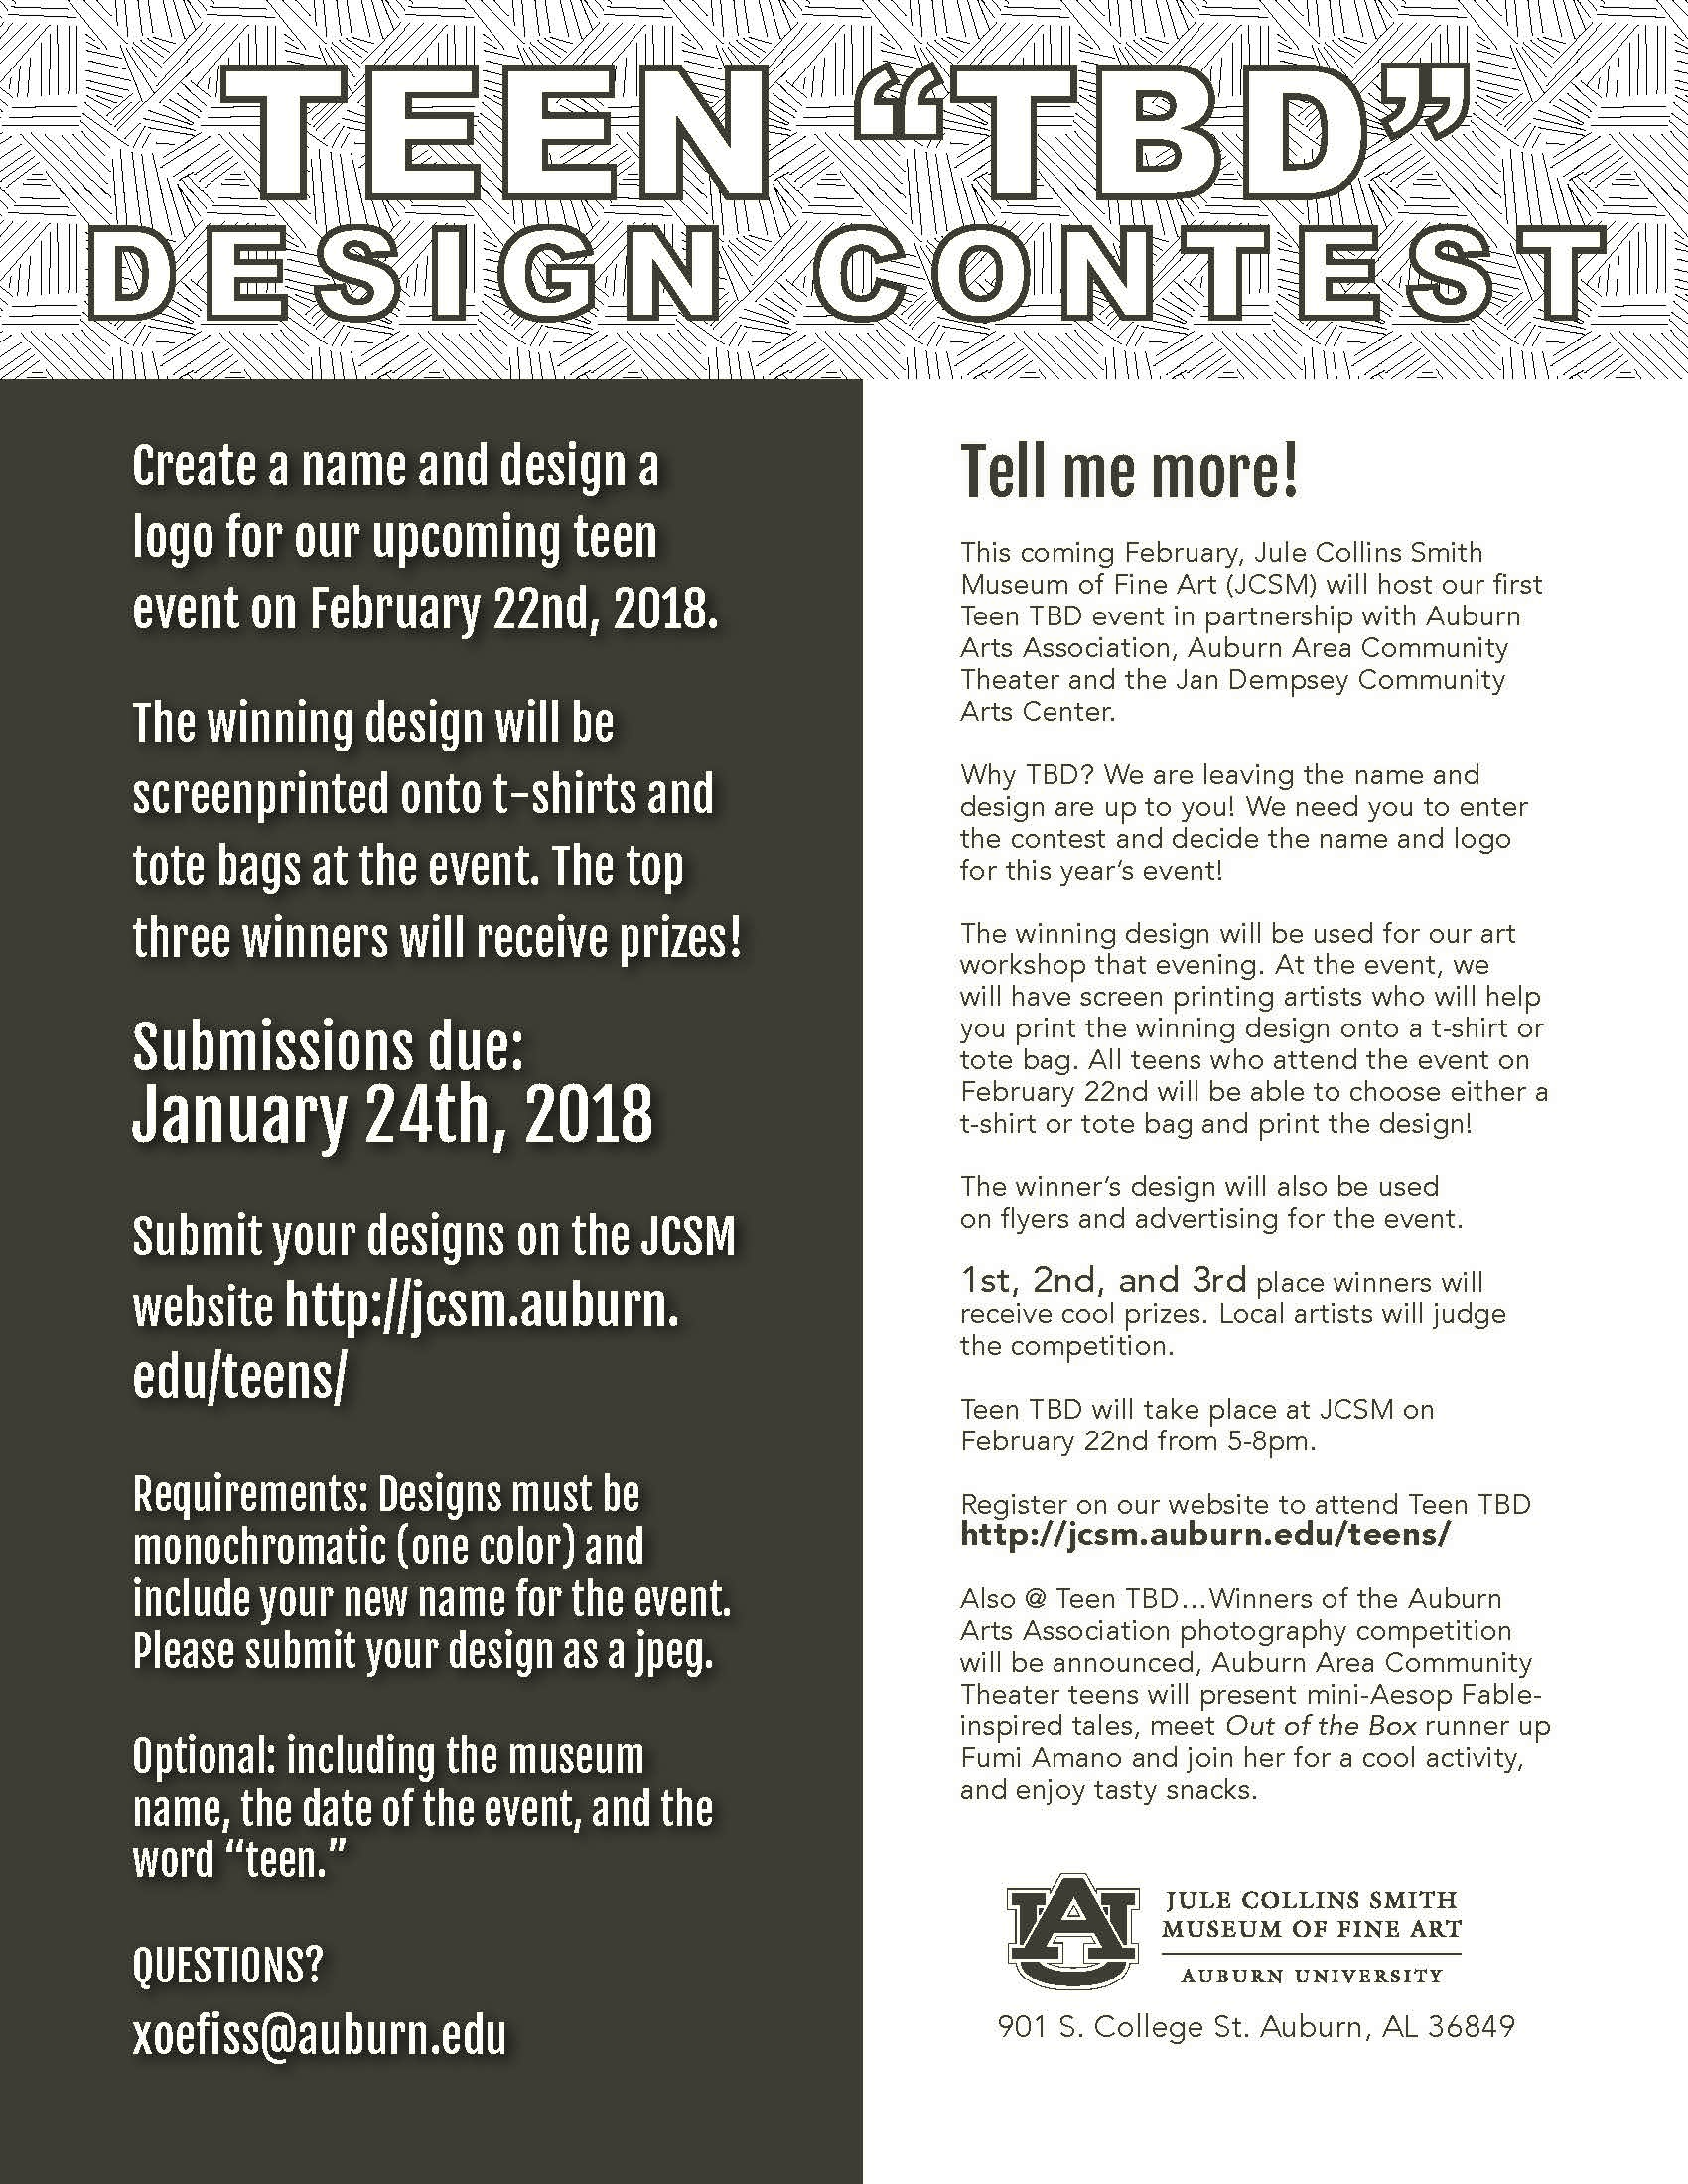 Informational flyer for the juried art competition Teen TBD.